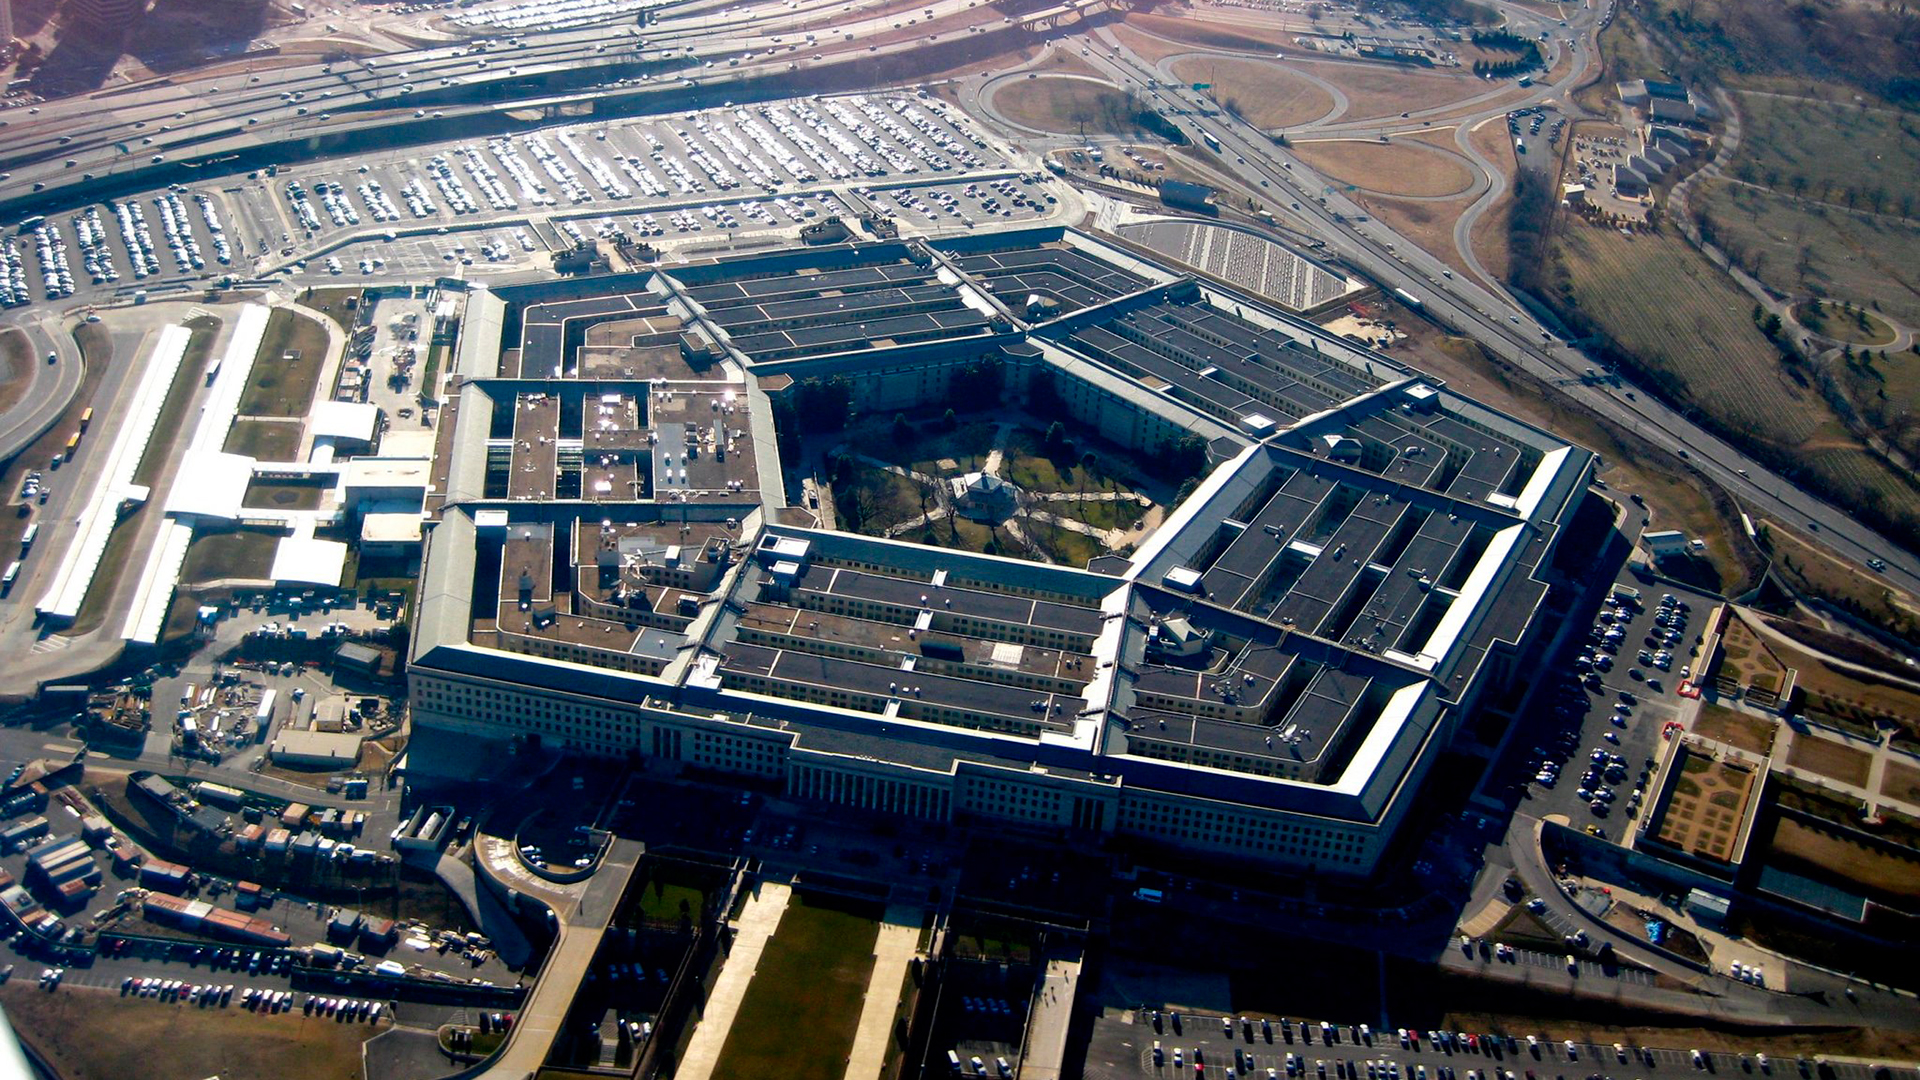 U.S. suddenly discoveres that Chinese company supplies drugs to the Pentagon